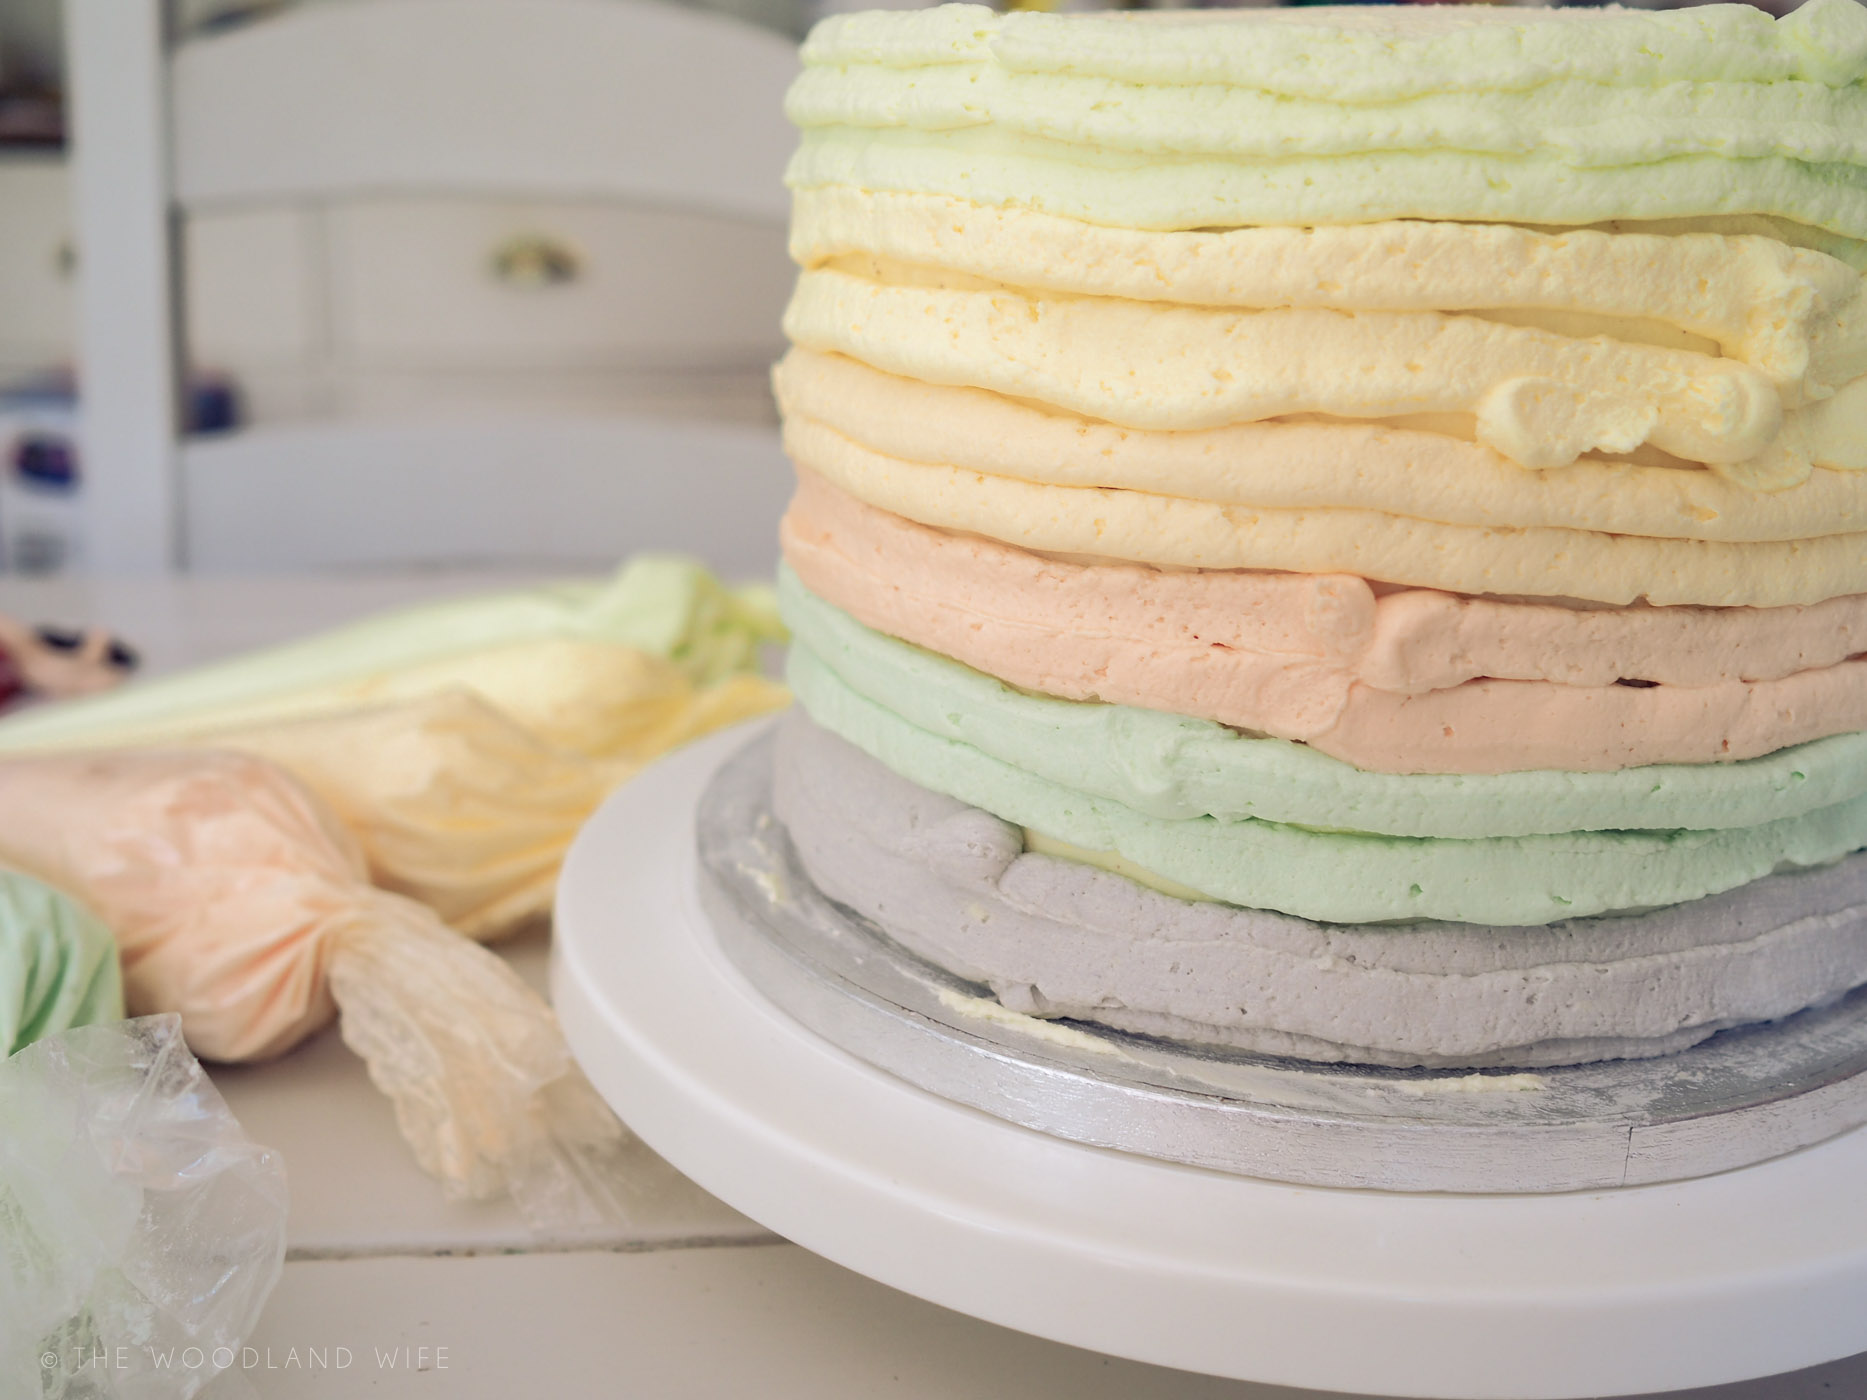 The Woodland Wife - Belle and Boo Birthday Cake - Rainbow Cake - Ombre Cake - Pastel Cake